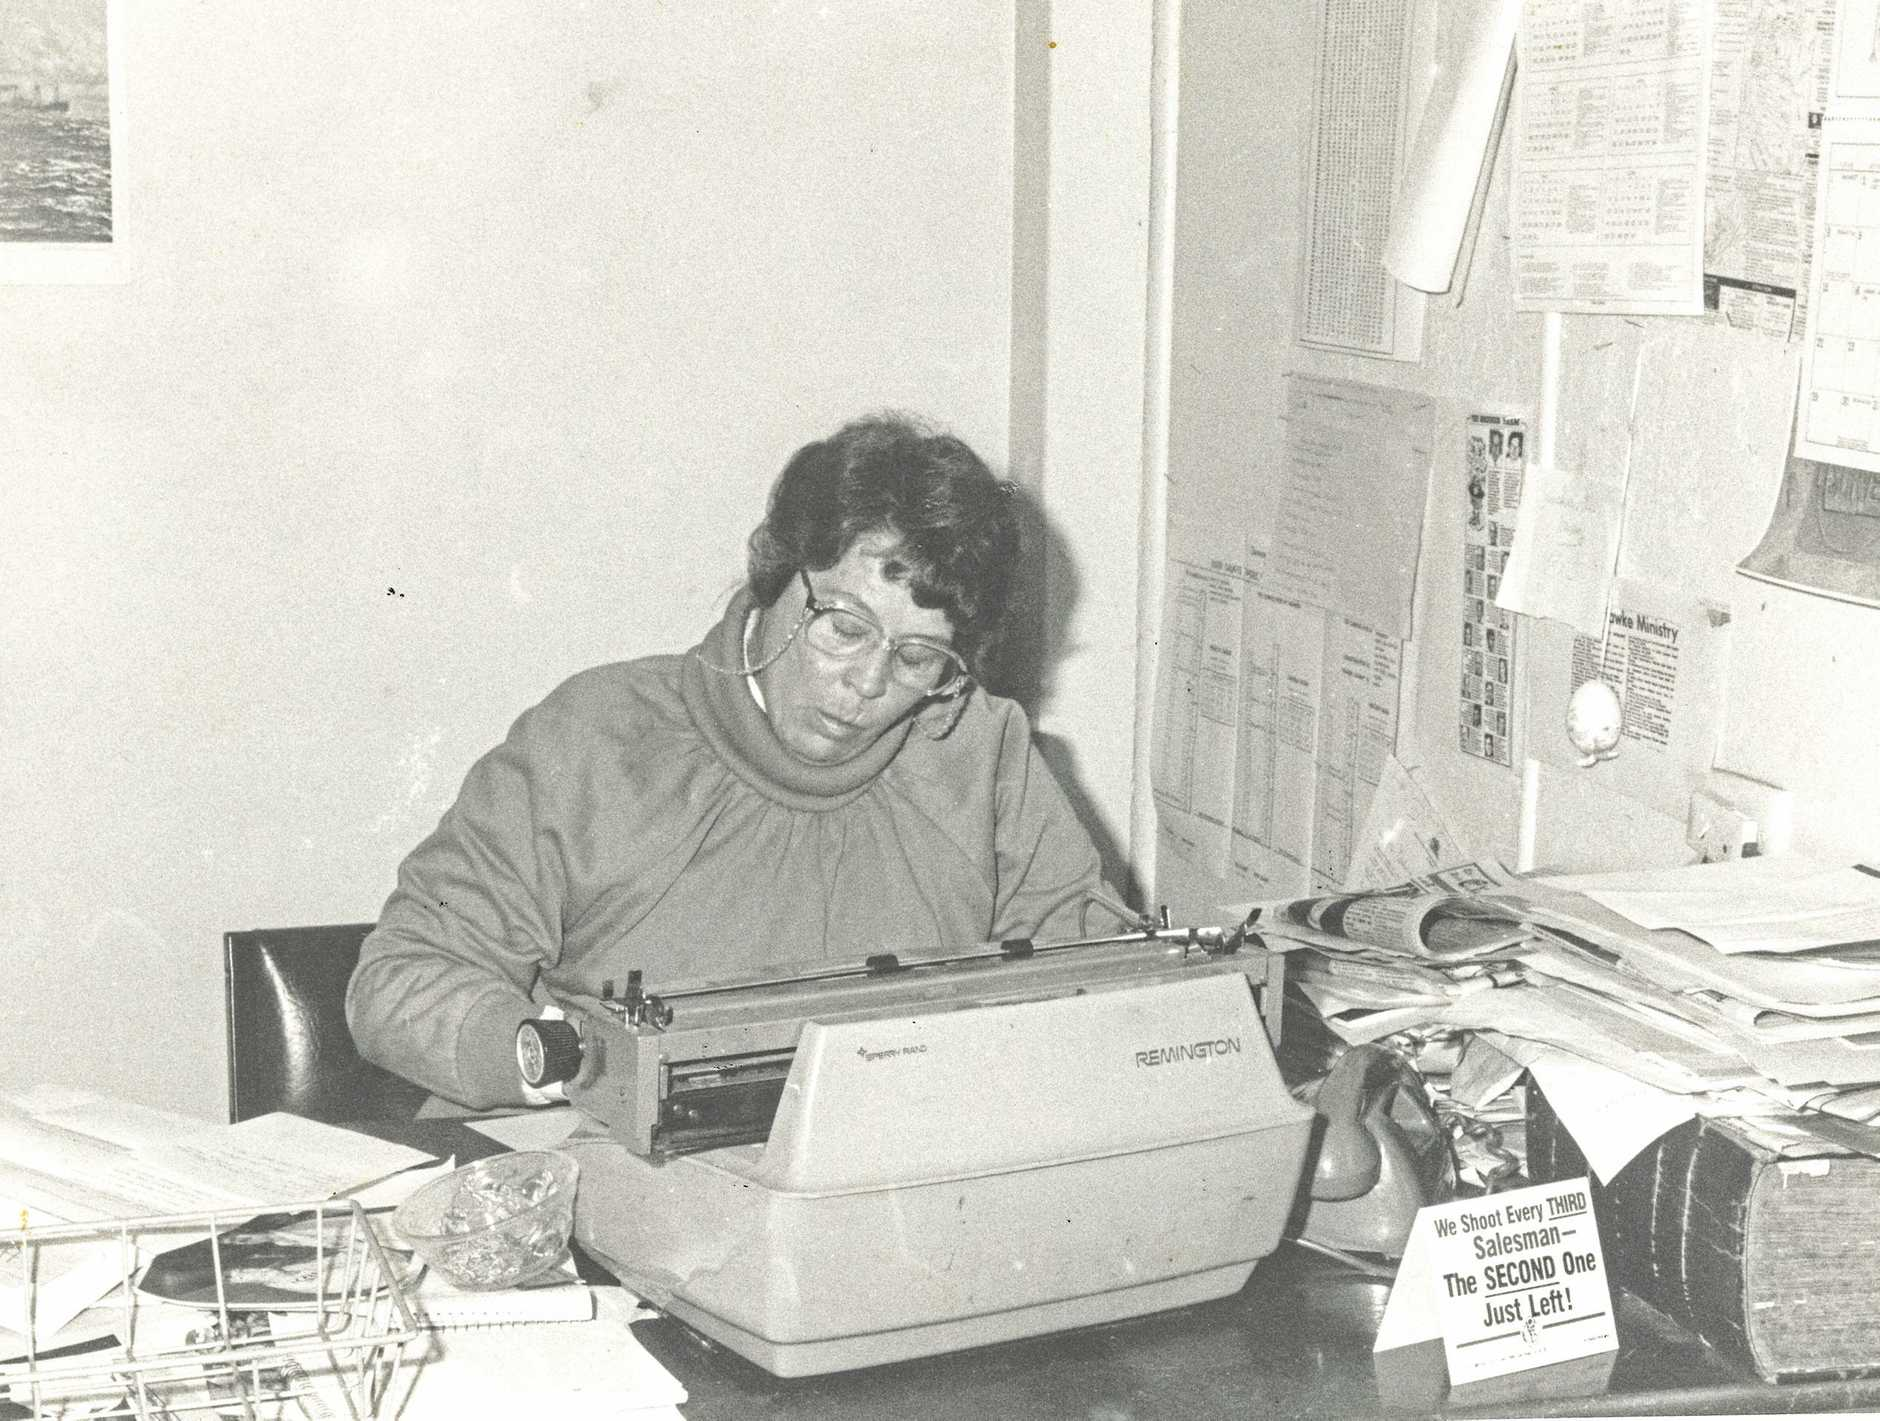 LAURETTA GODBEE: Hard at work in the early 1980s.